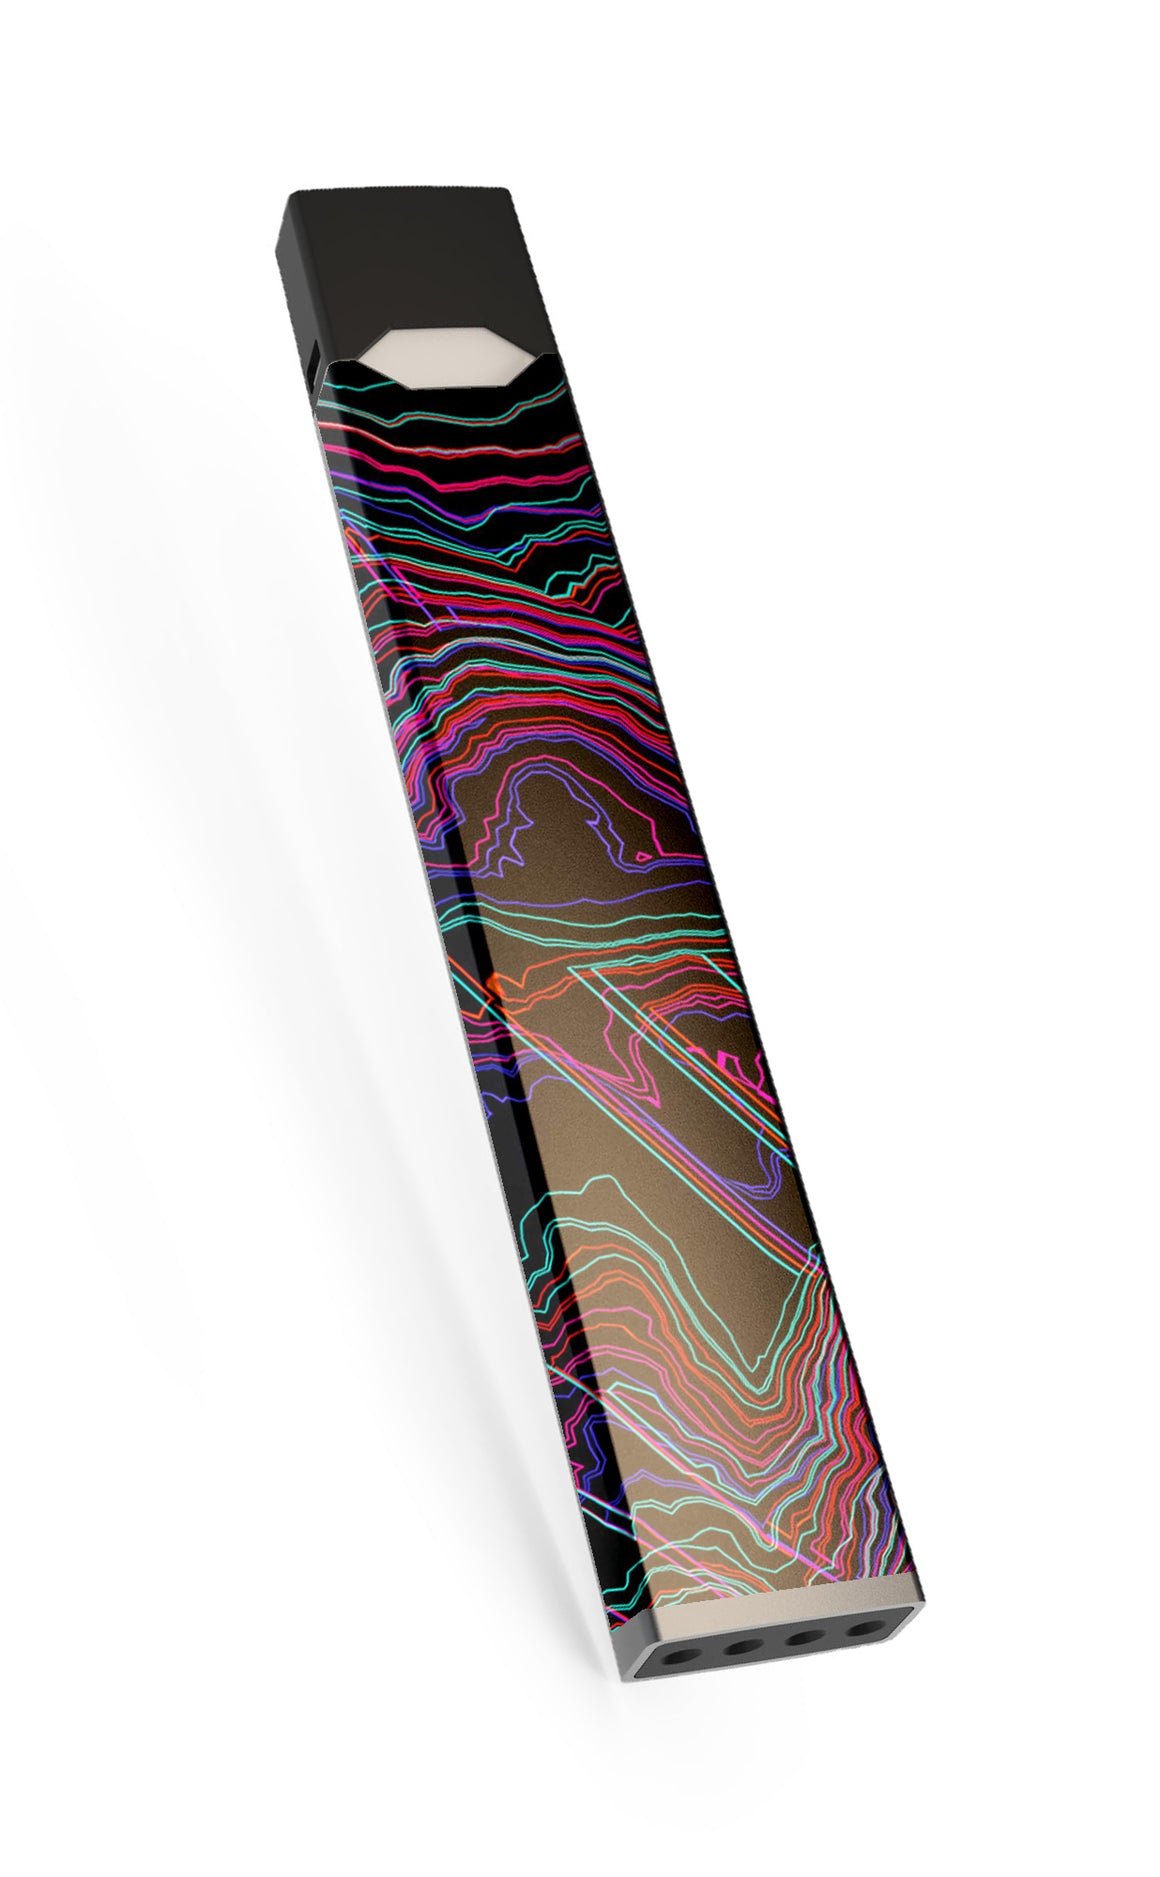 Energi - Graphic Skin for JUUL